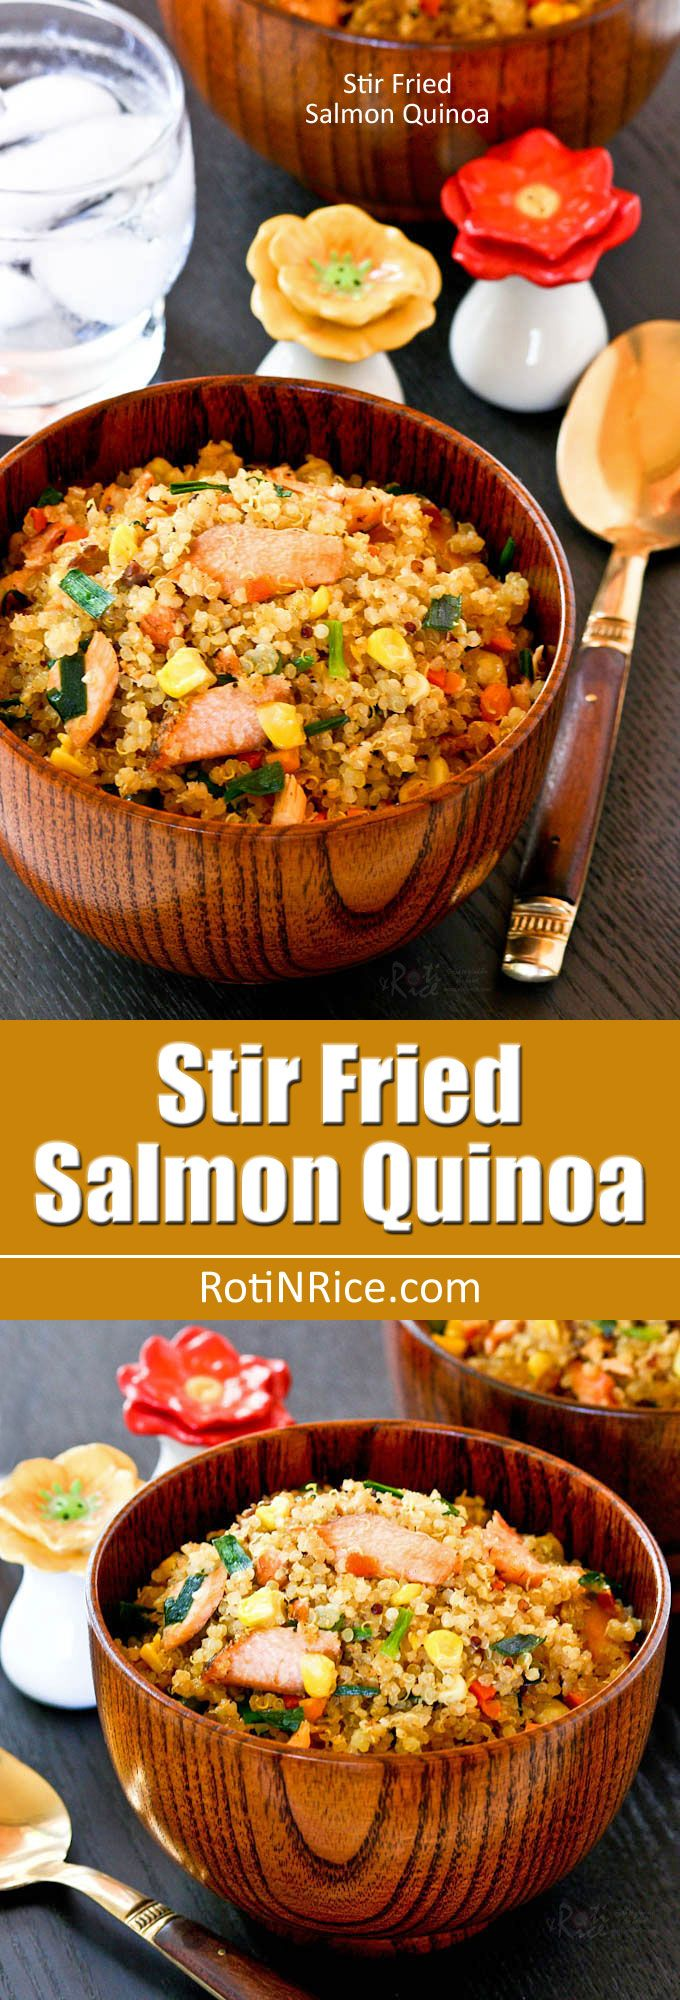 """Stir Fried Salmon Quinoa, a deliciously nutty fried """"rice"""" made with quinoa instead of rice and leftover grilled salmon, carrots, chives, and corn. 